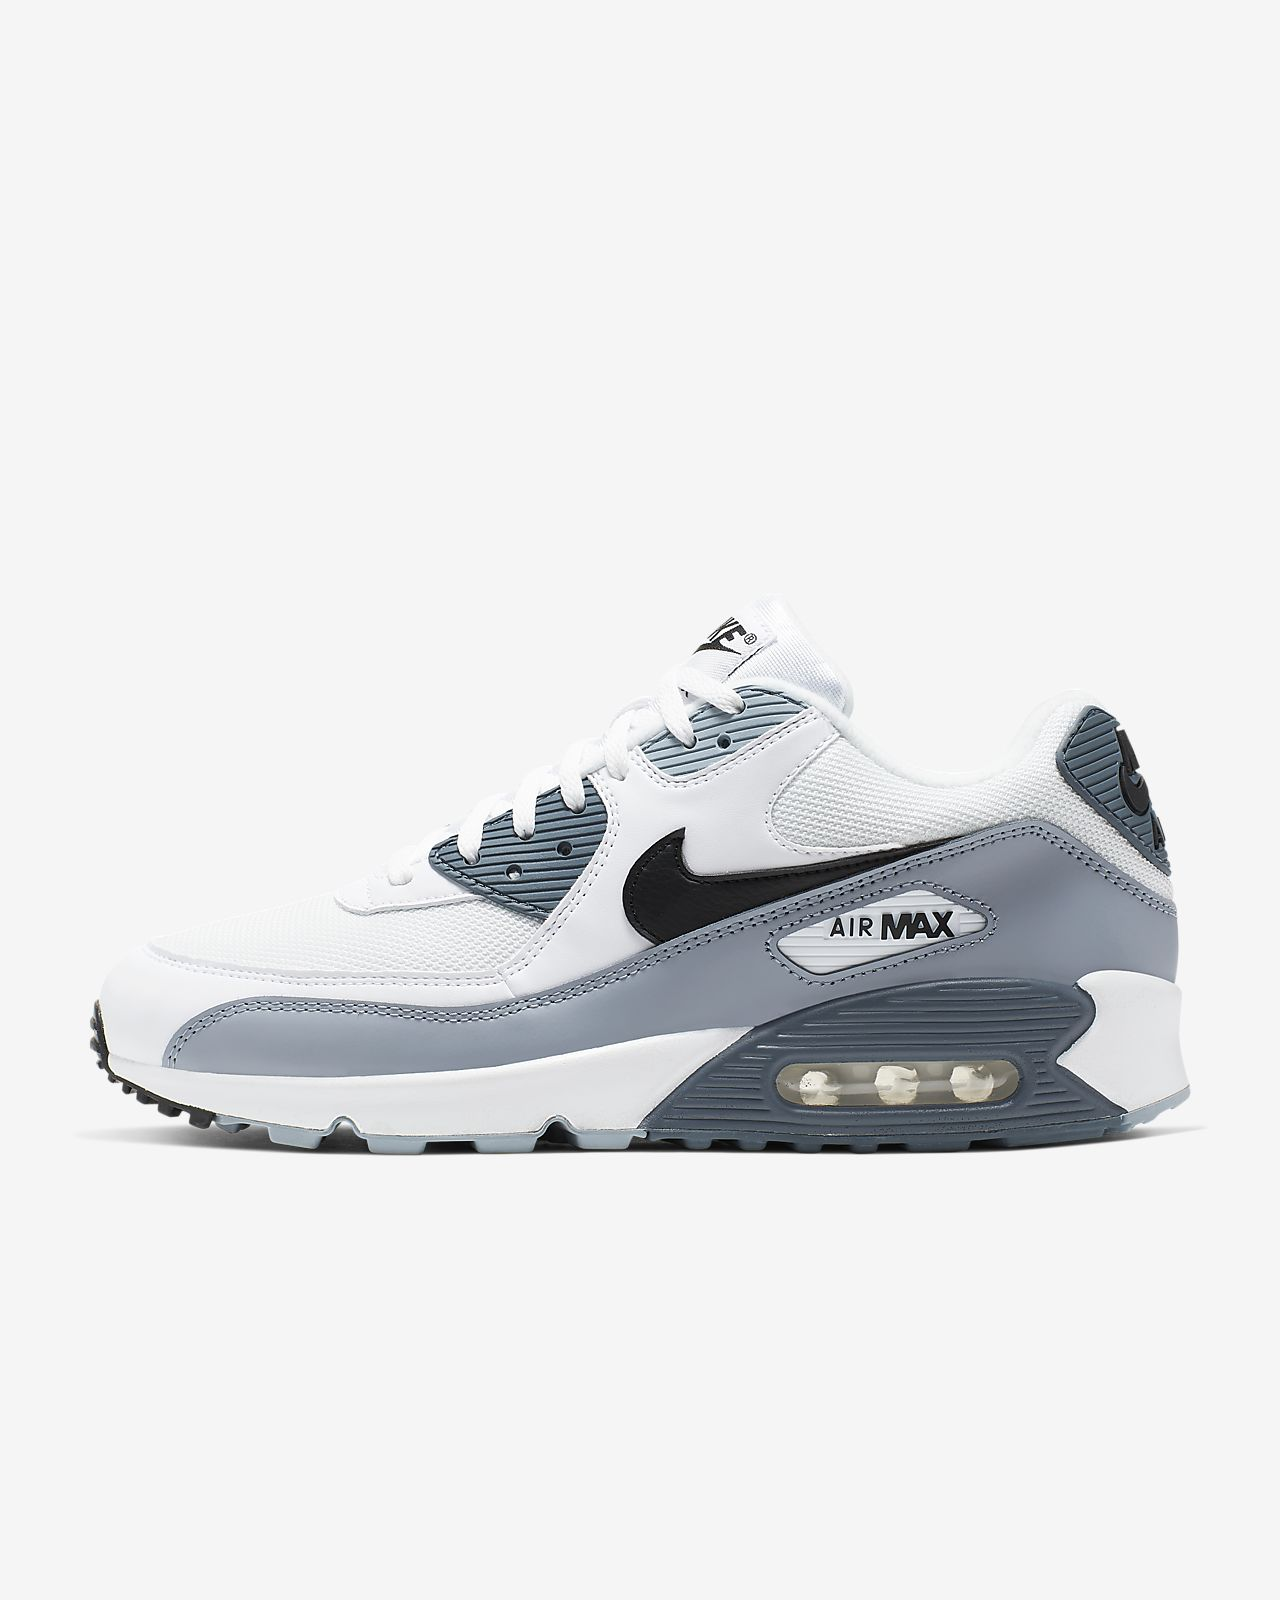 separation shoes fe5d6 38497 ... Nike Air Max 90 Essential Men s Shoe